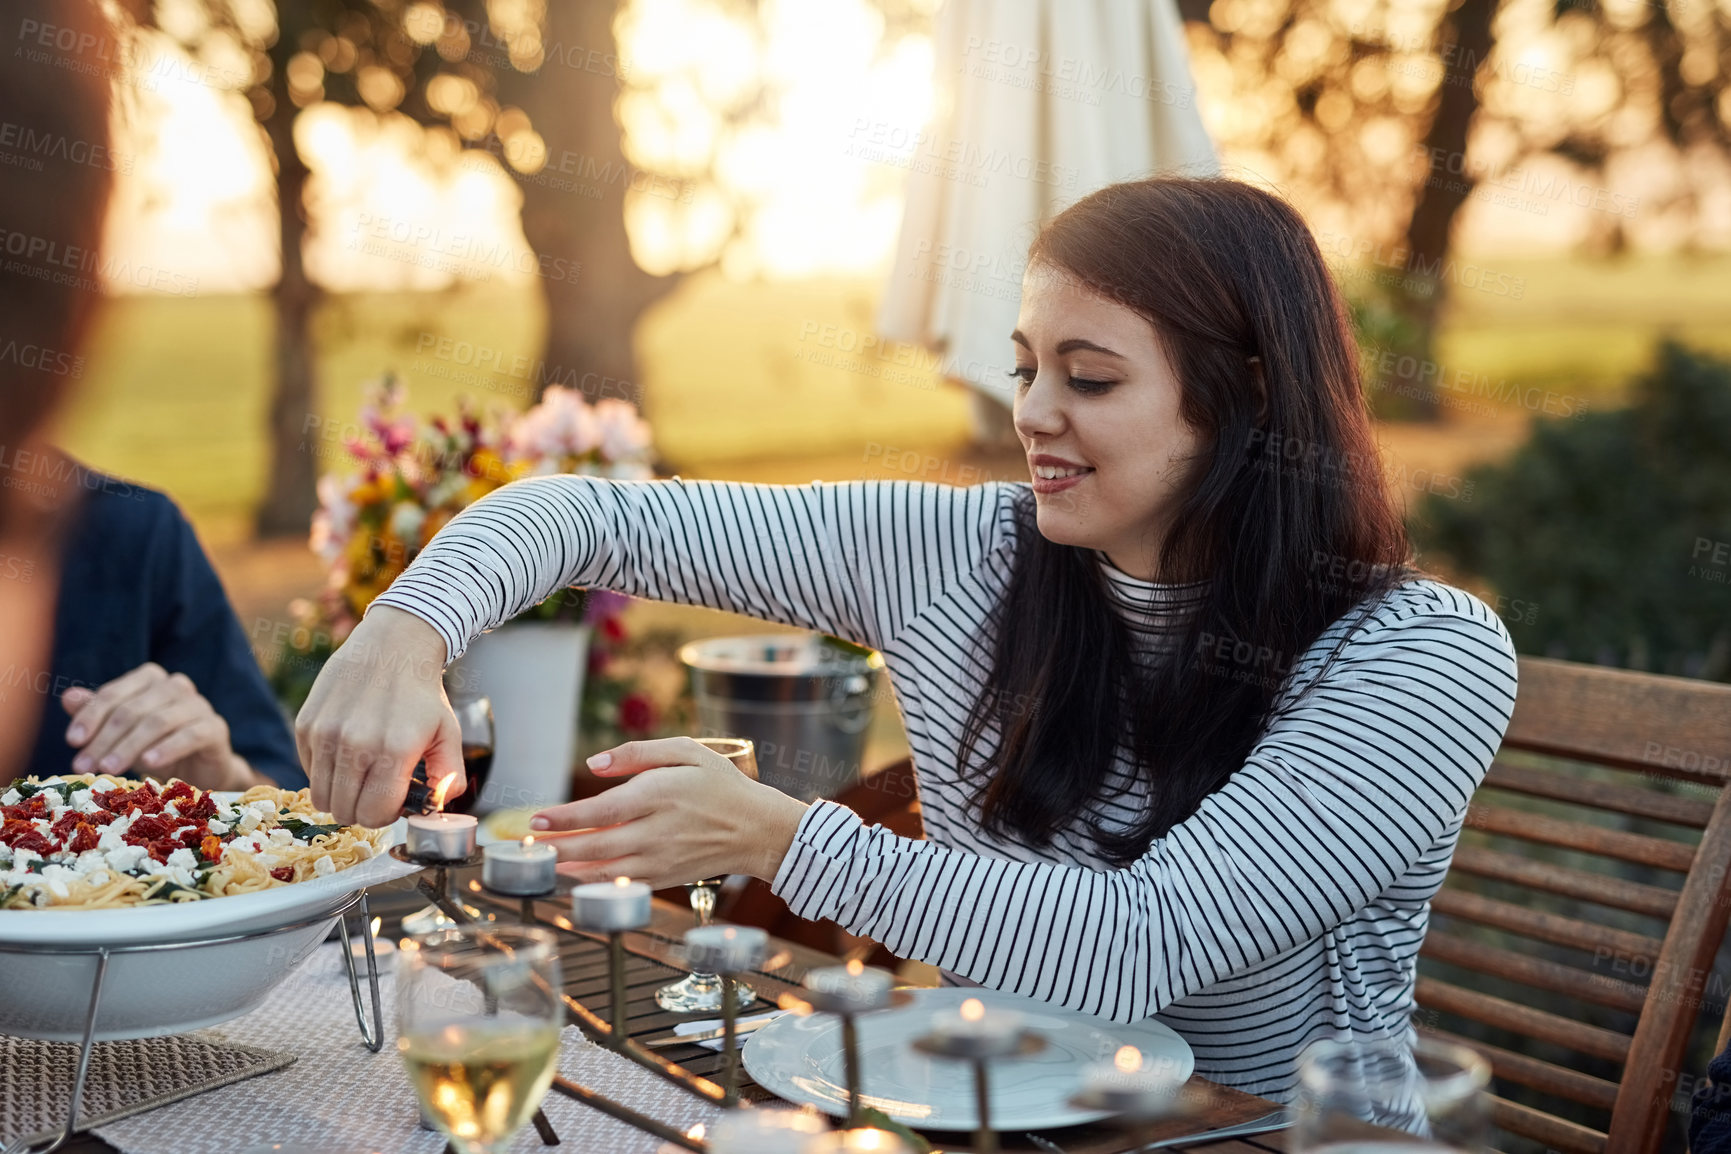 Buy stock photo Shot of a young woman lighting candles on the dinner table outdoors